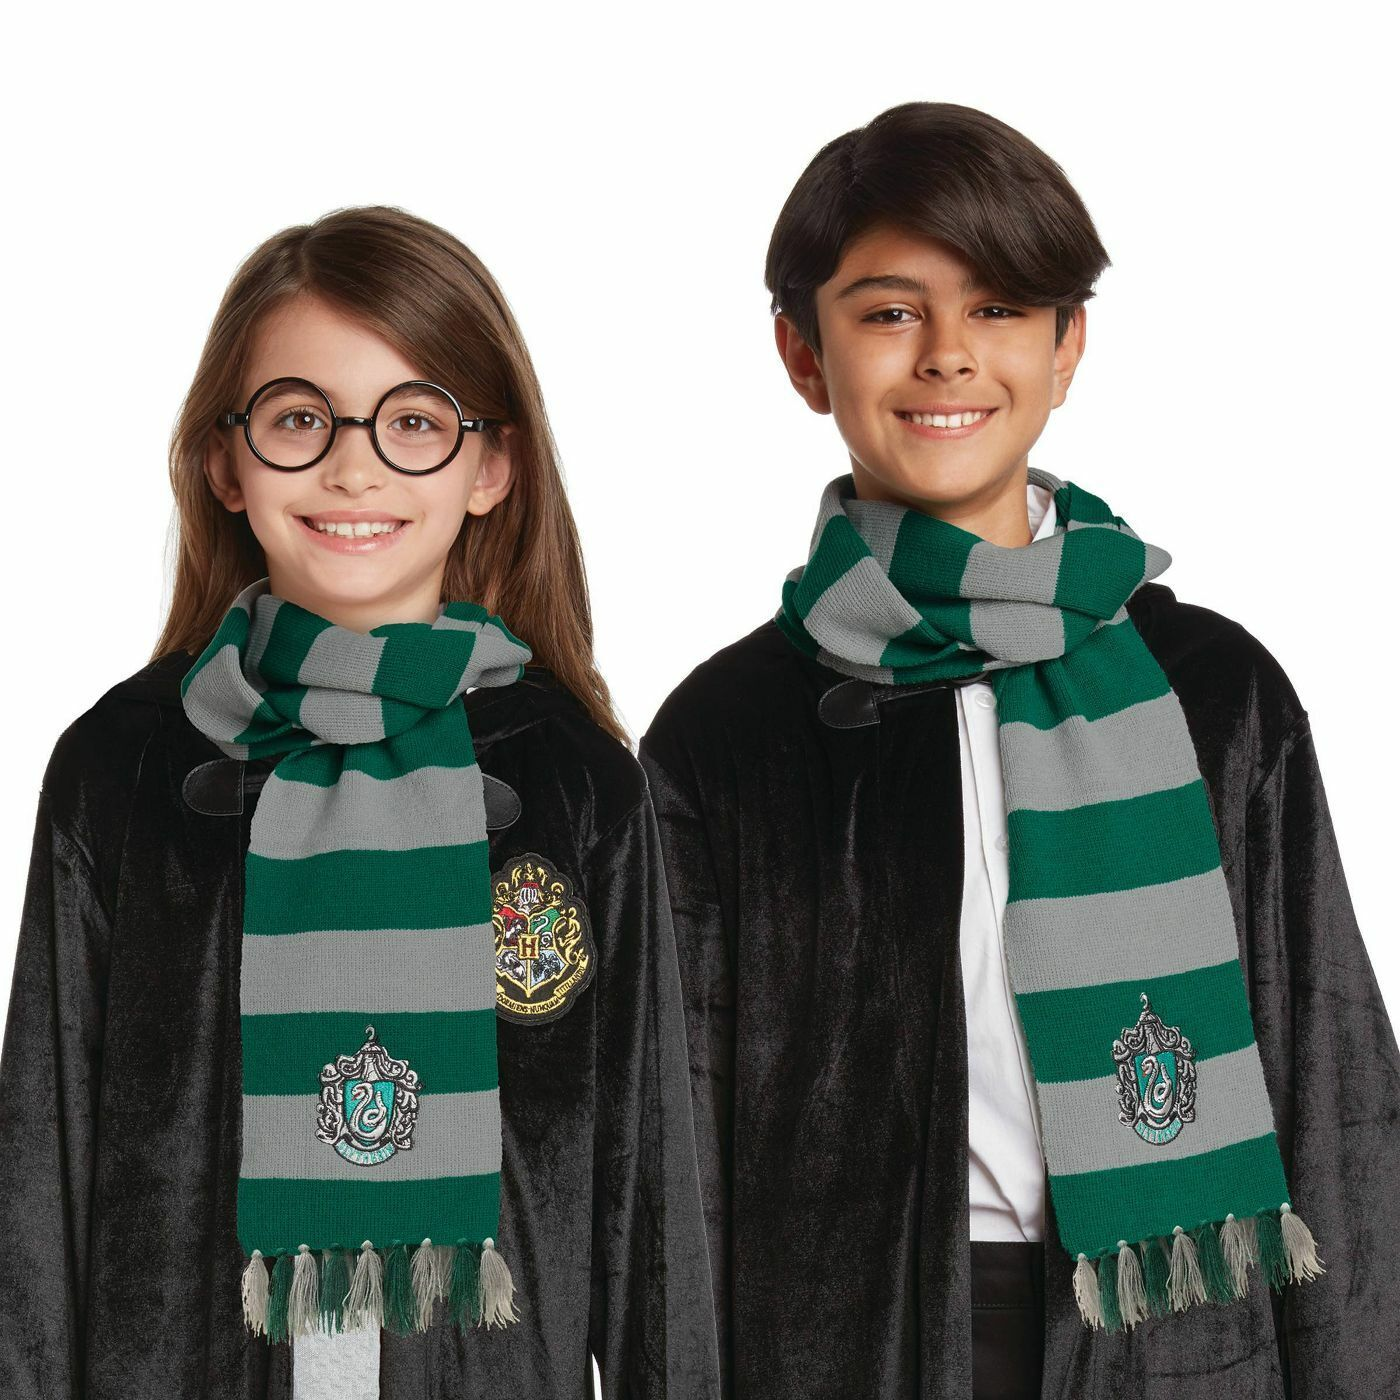 Official Licensed Harry Potter Slytherin Scarf Costume for Kid Holloween Cosplay Collectibles